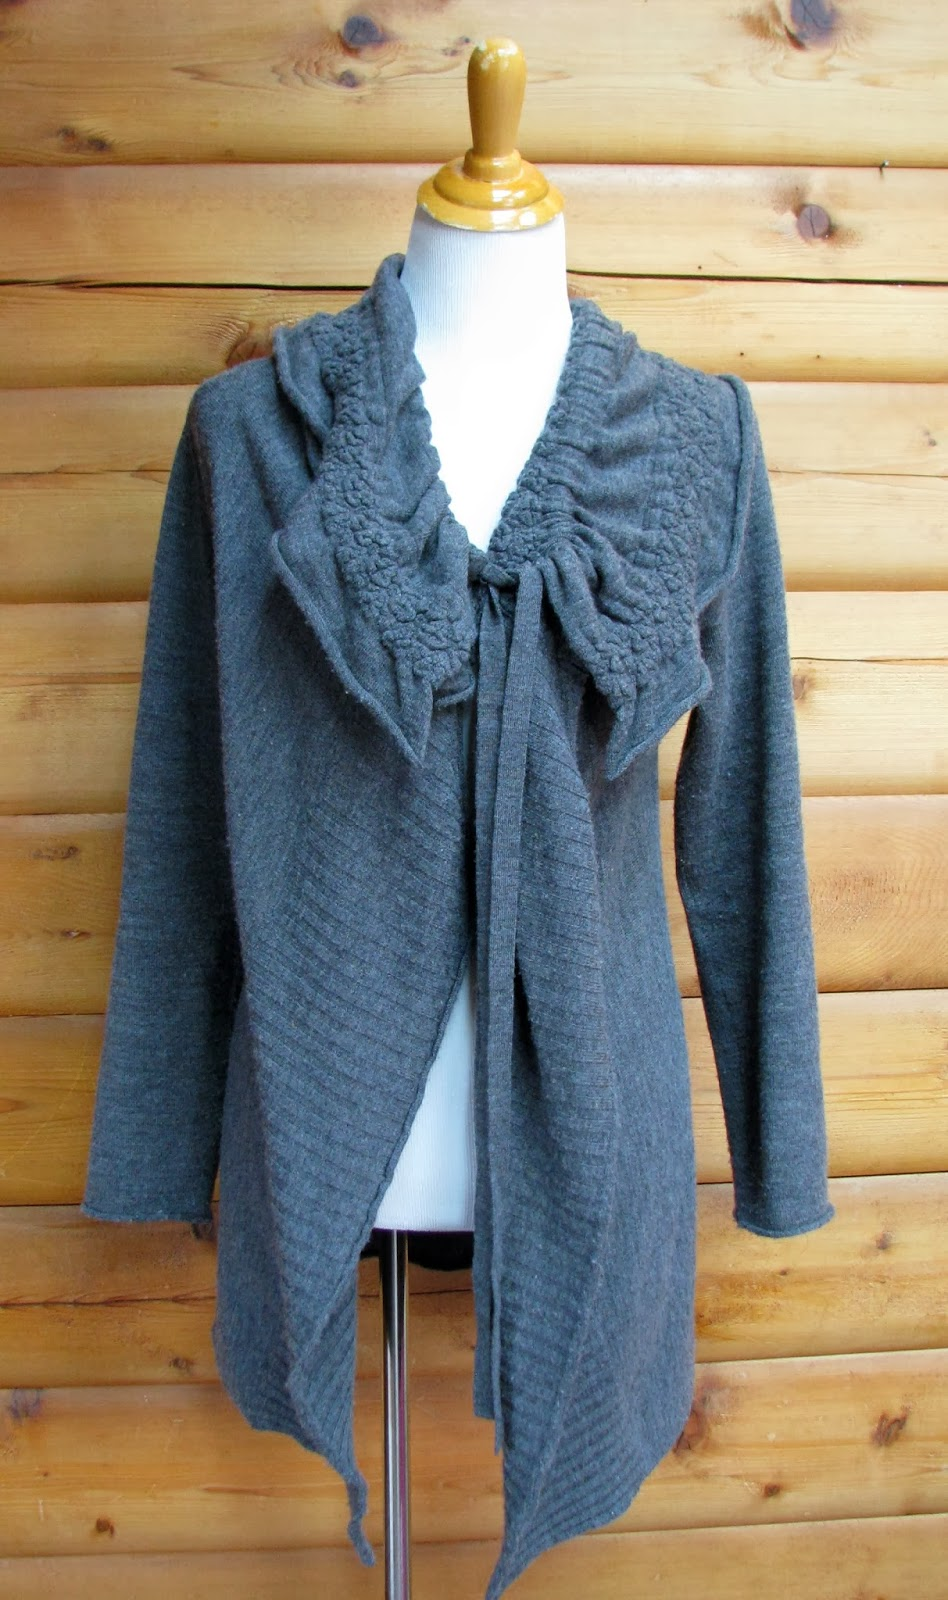 http://www.ebay.com/itm/MOTH-Anthropologie-Grey-Long-Sweater-Coat-Wool-Ruffle-Women-Medium-/131101608272?